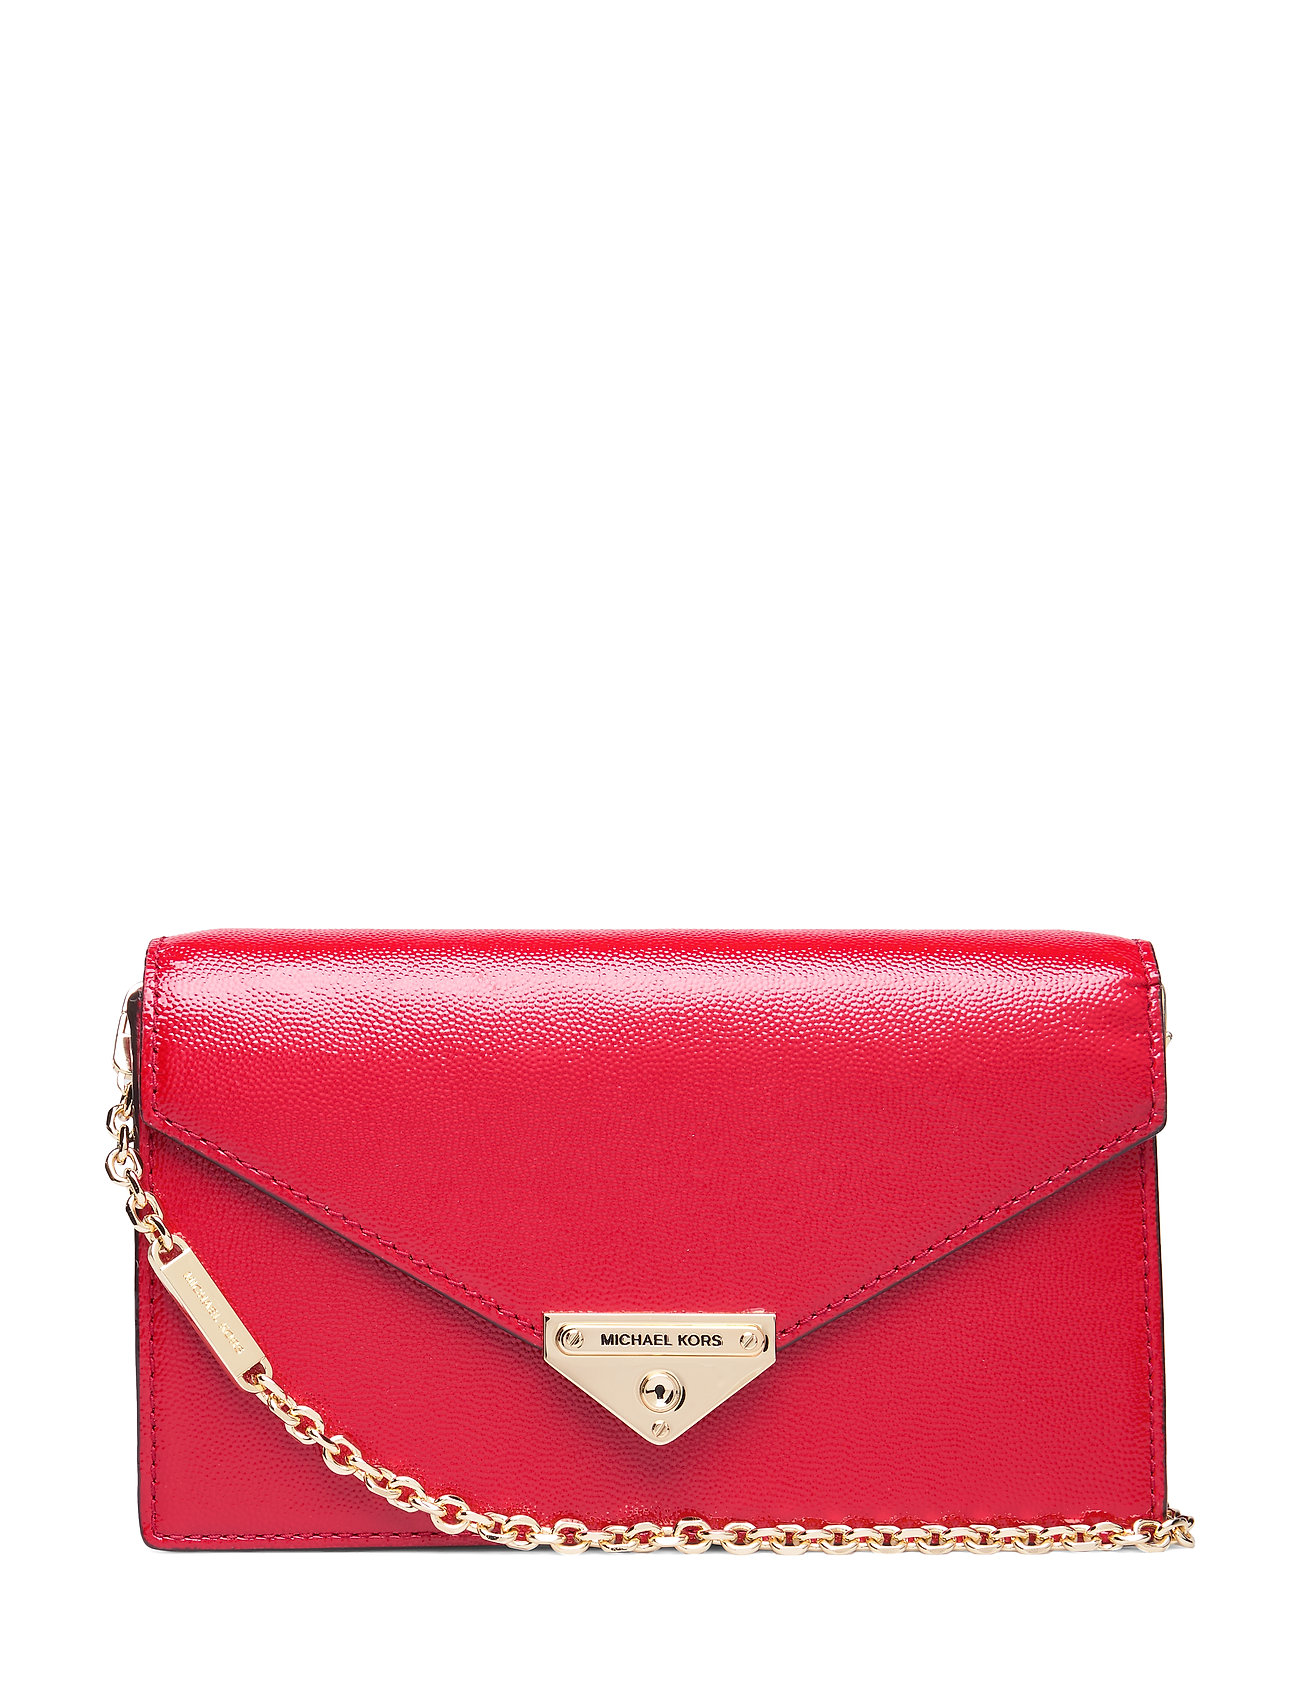 Michael Kors Bags MD ENVELOPE CLUTCH - BRIGHT RED